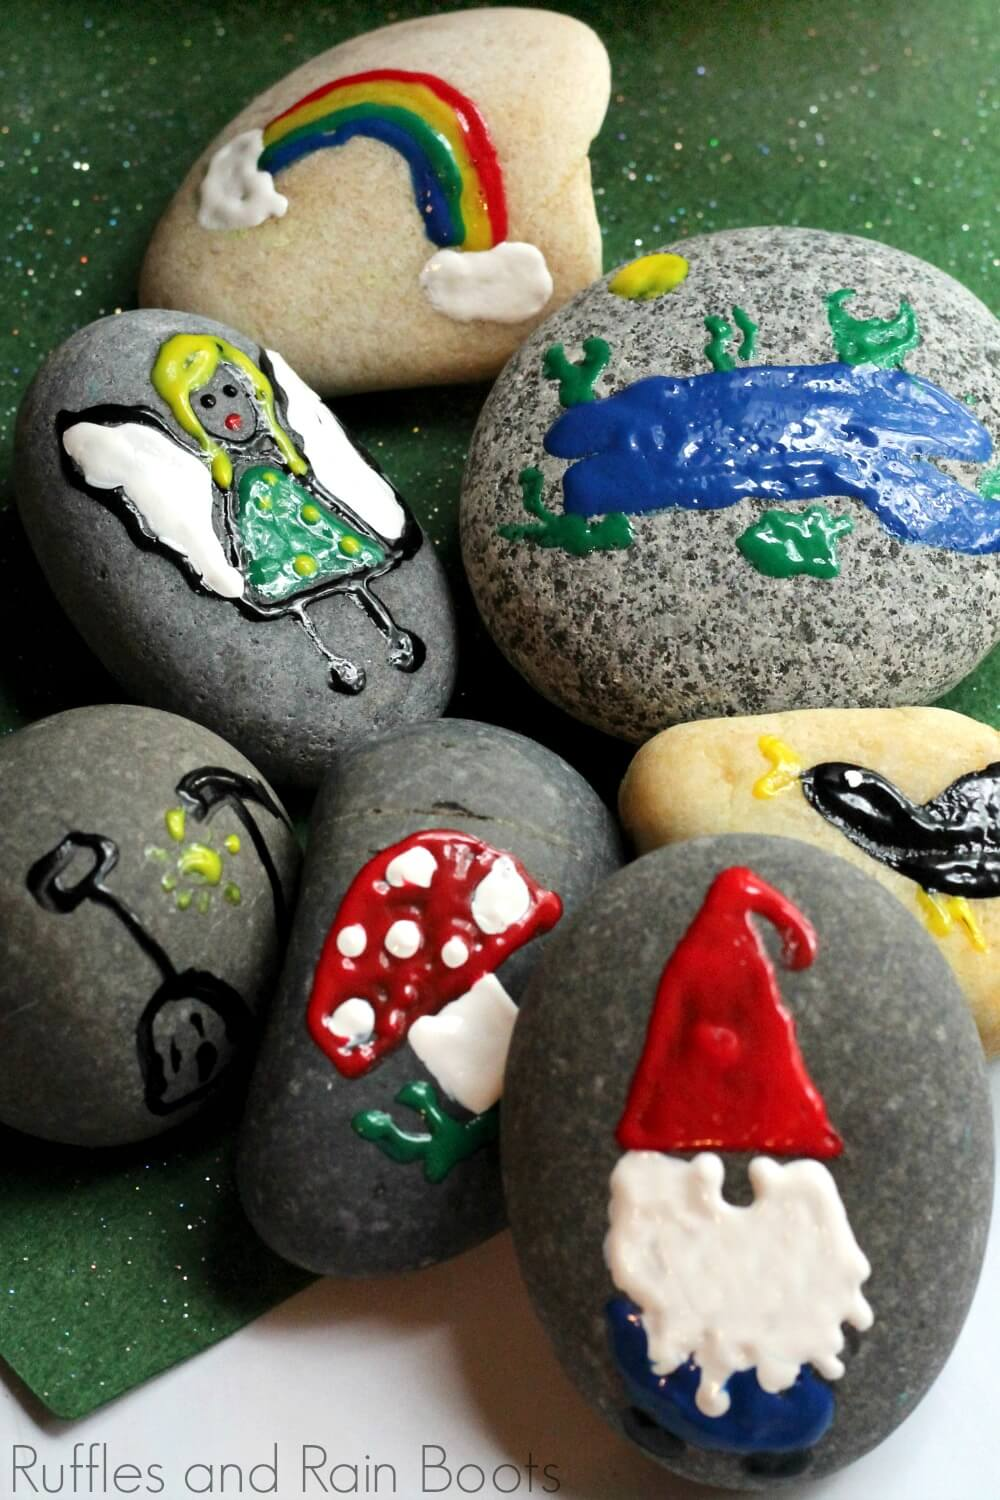 completed gnome rock painting ready to take and place outdoors